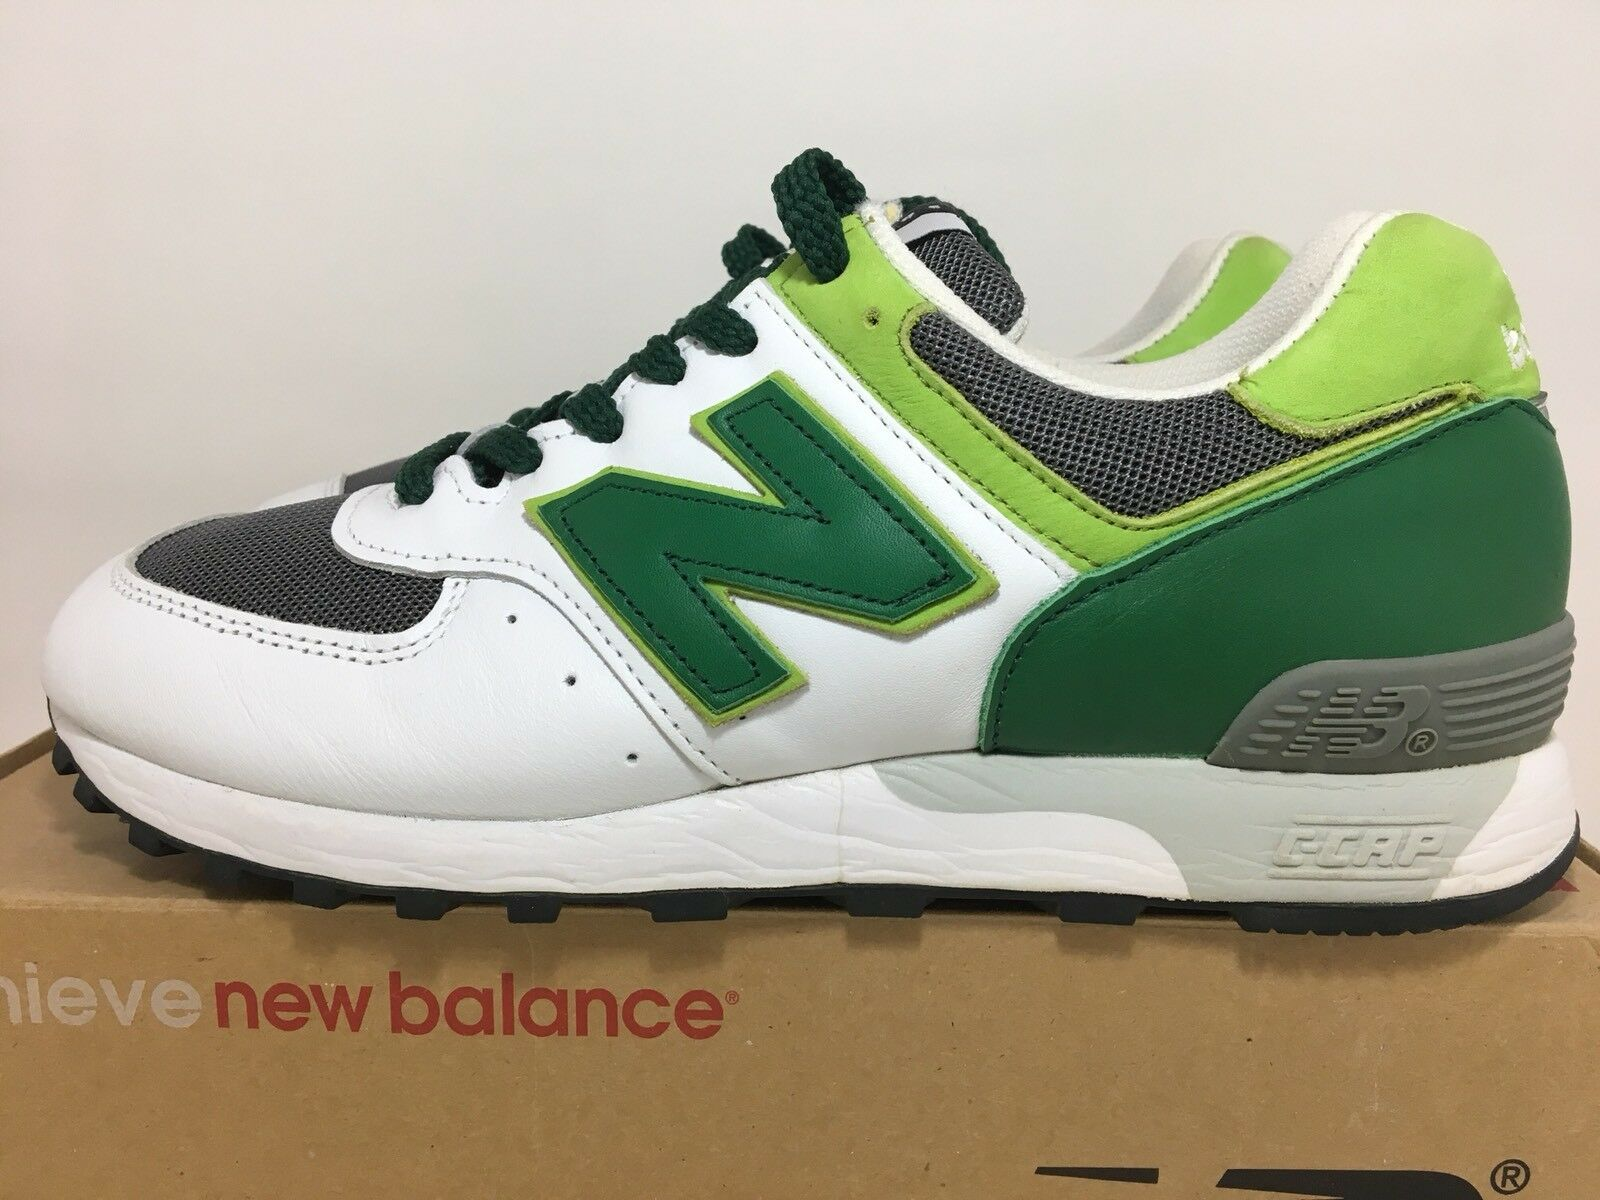 New Balance 576 Crooked Tongues US8 M576CT04 Solebox Sns